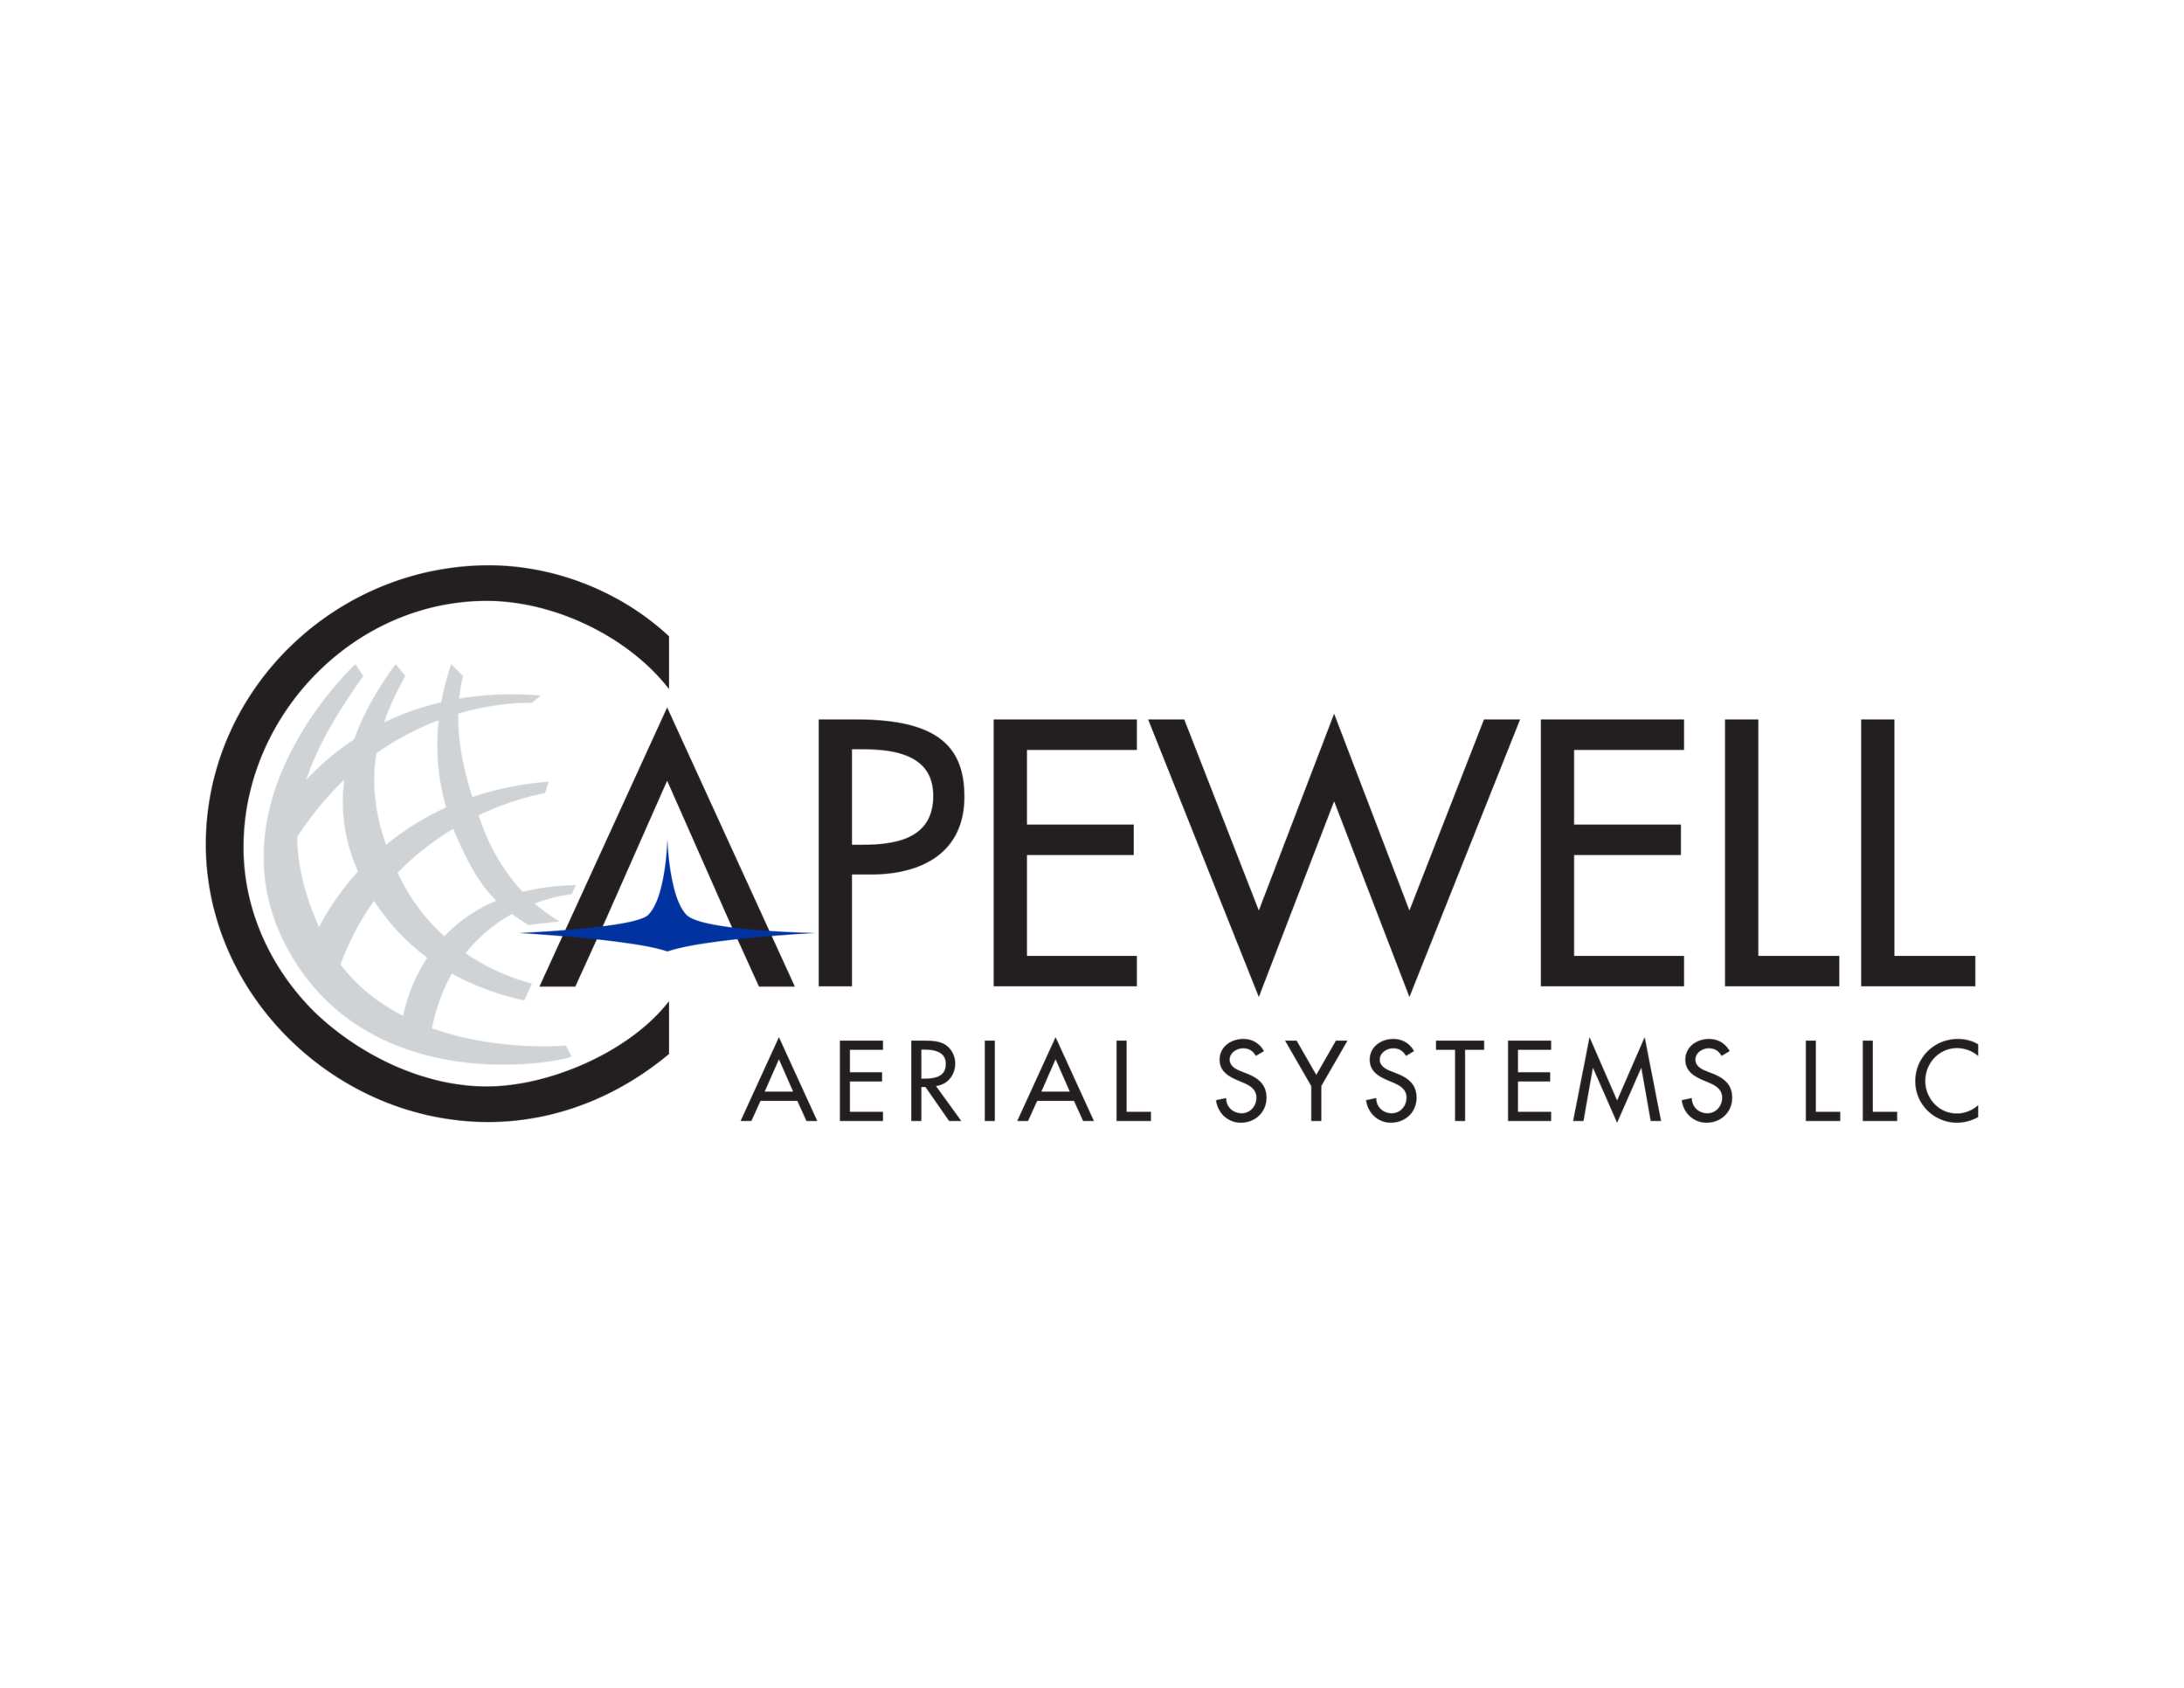 Capewell Full Logo No Bkgd.png